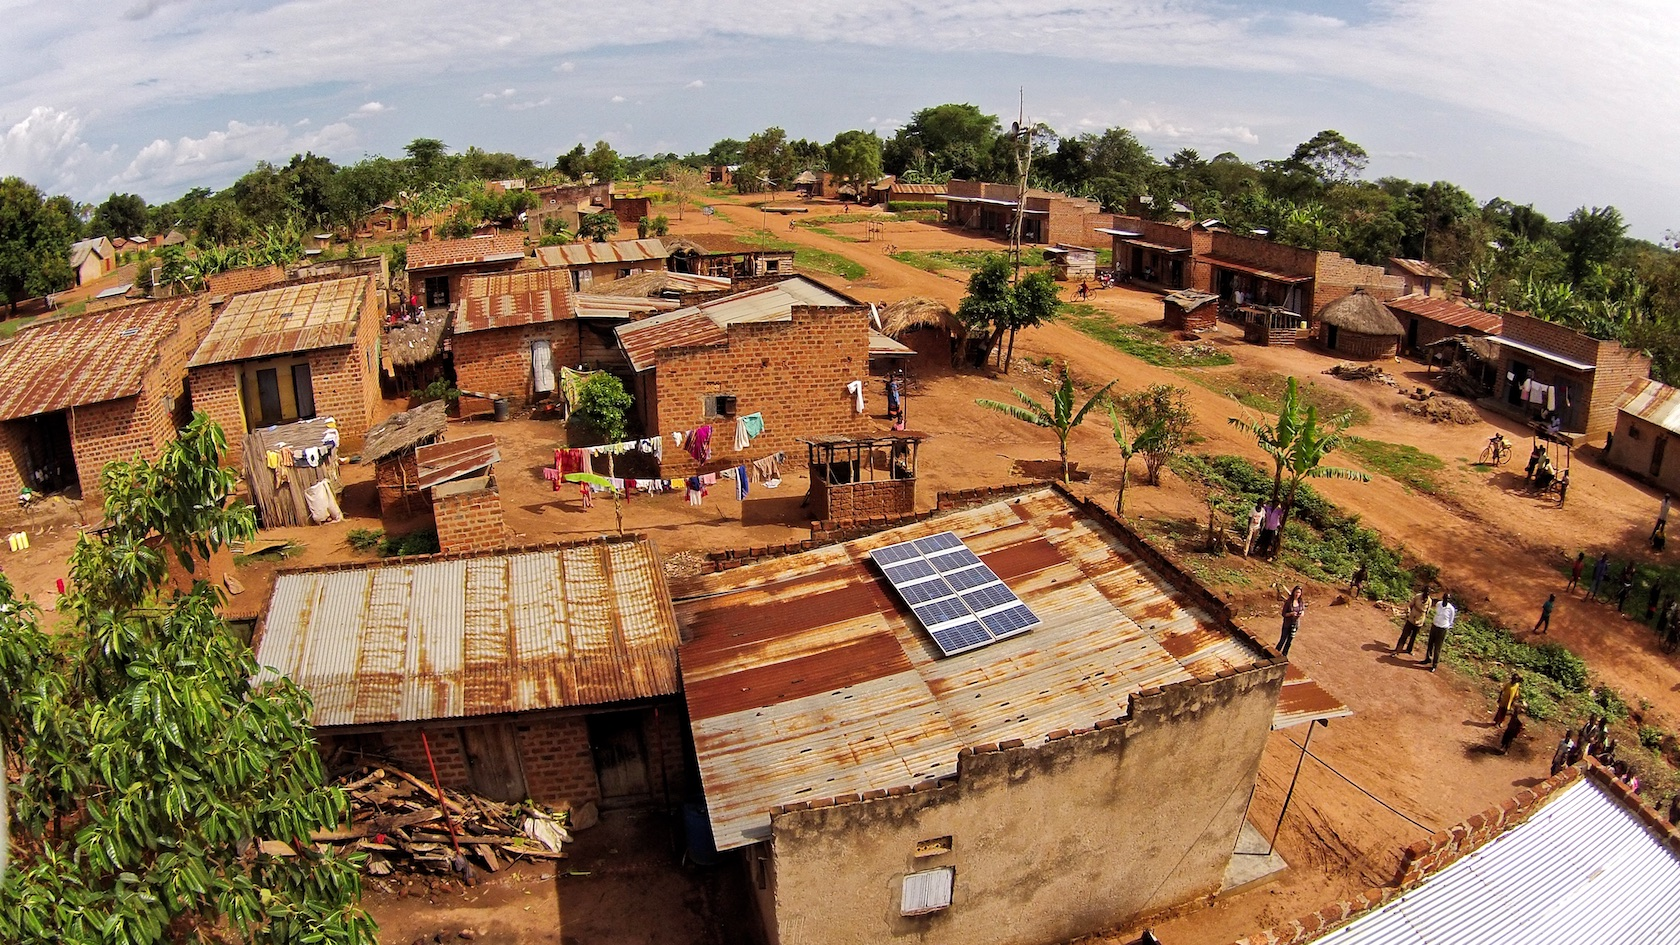 This 500W solar system in a rural village in Uganda powers a home ...